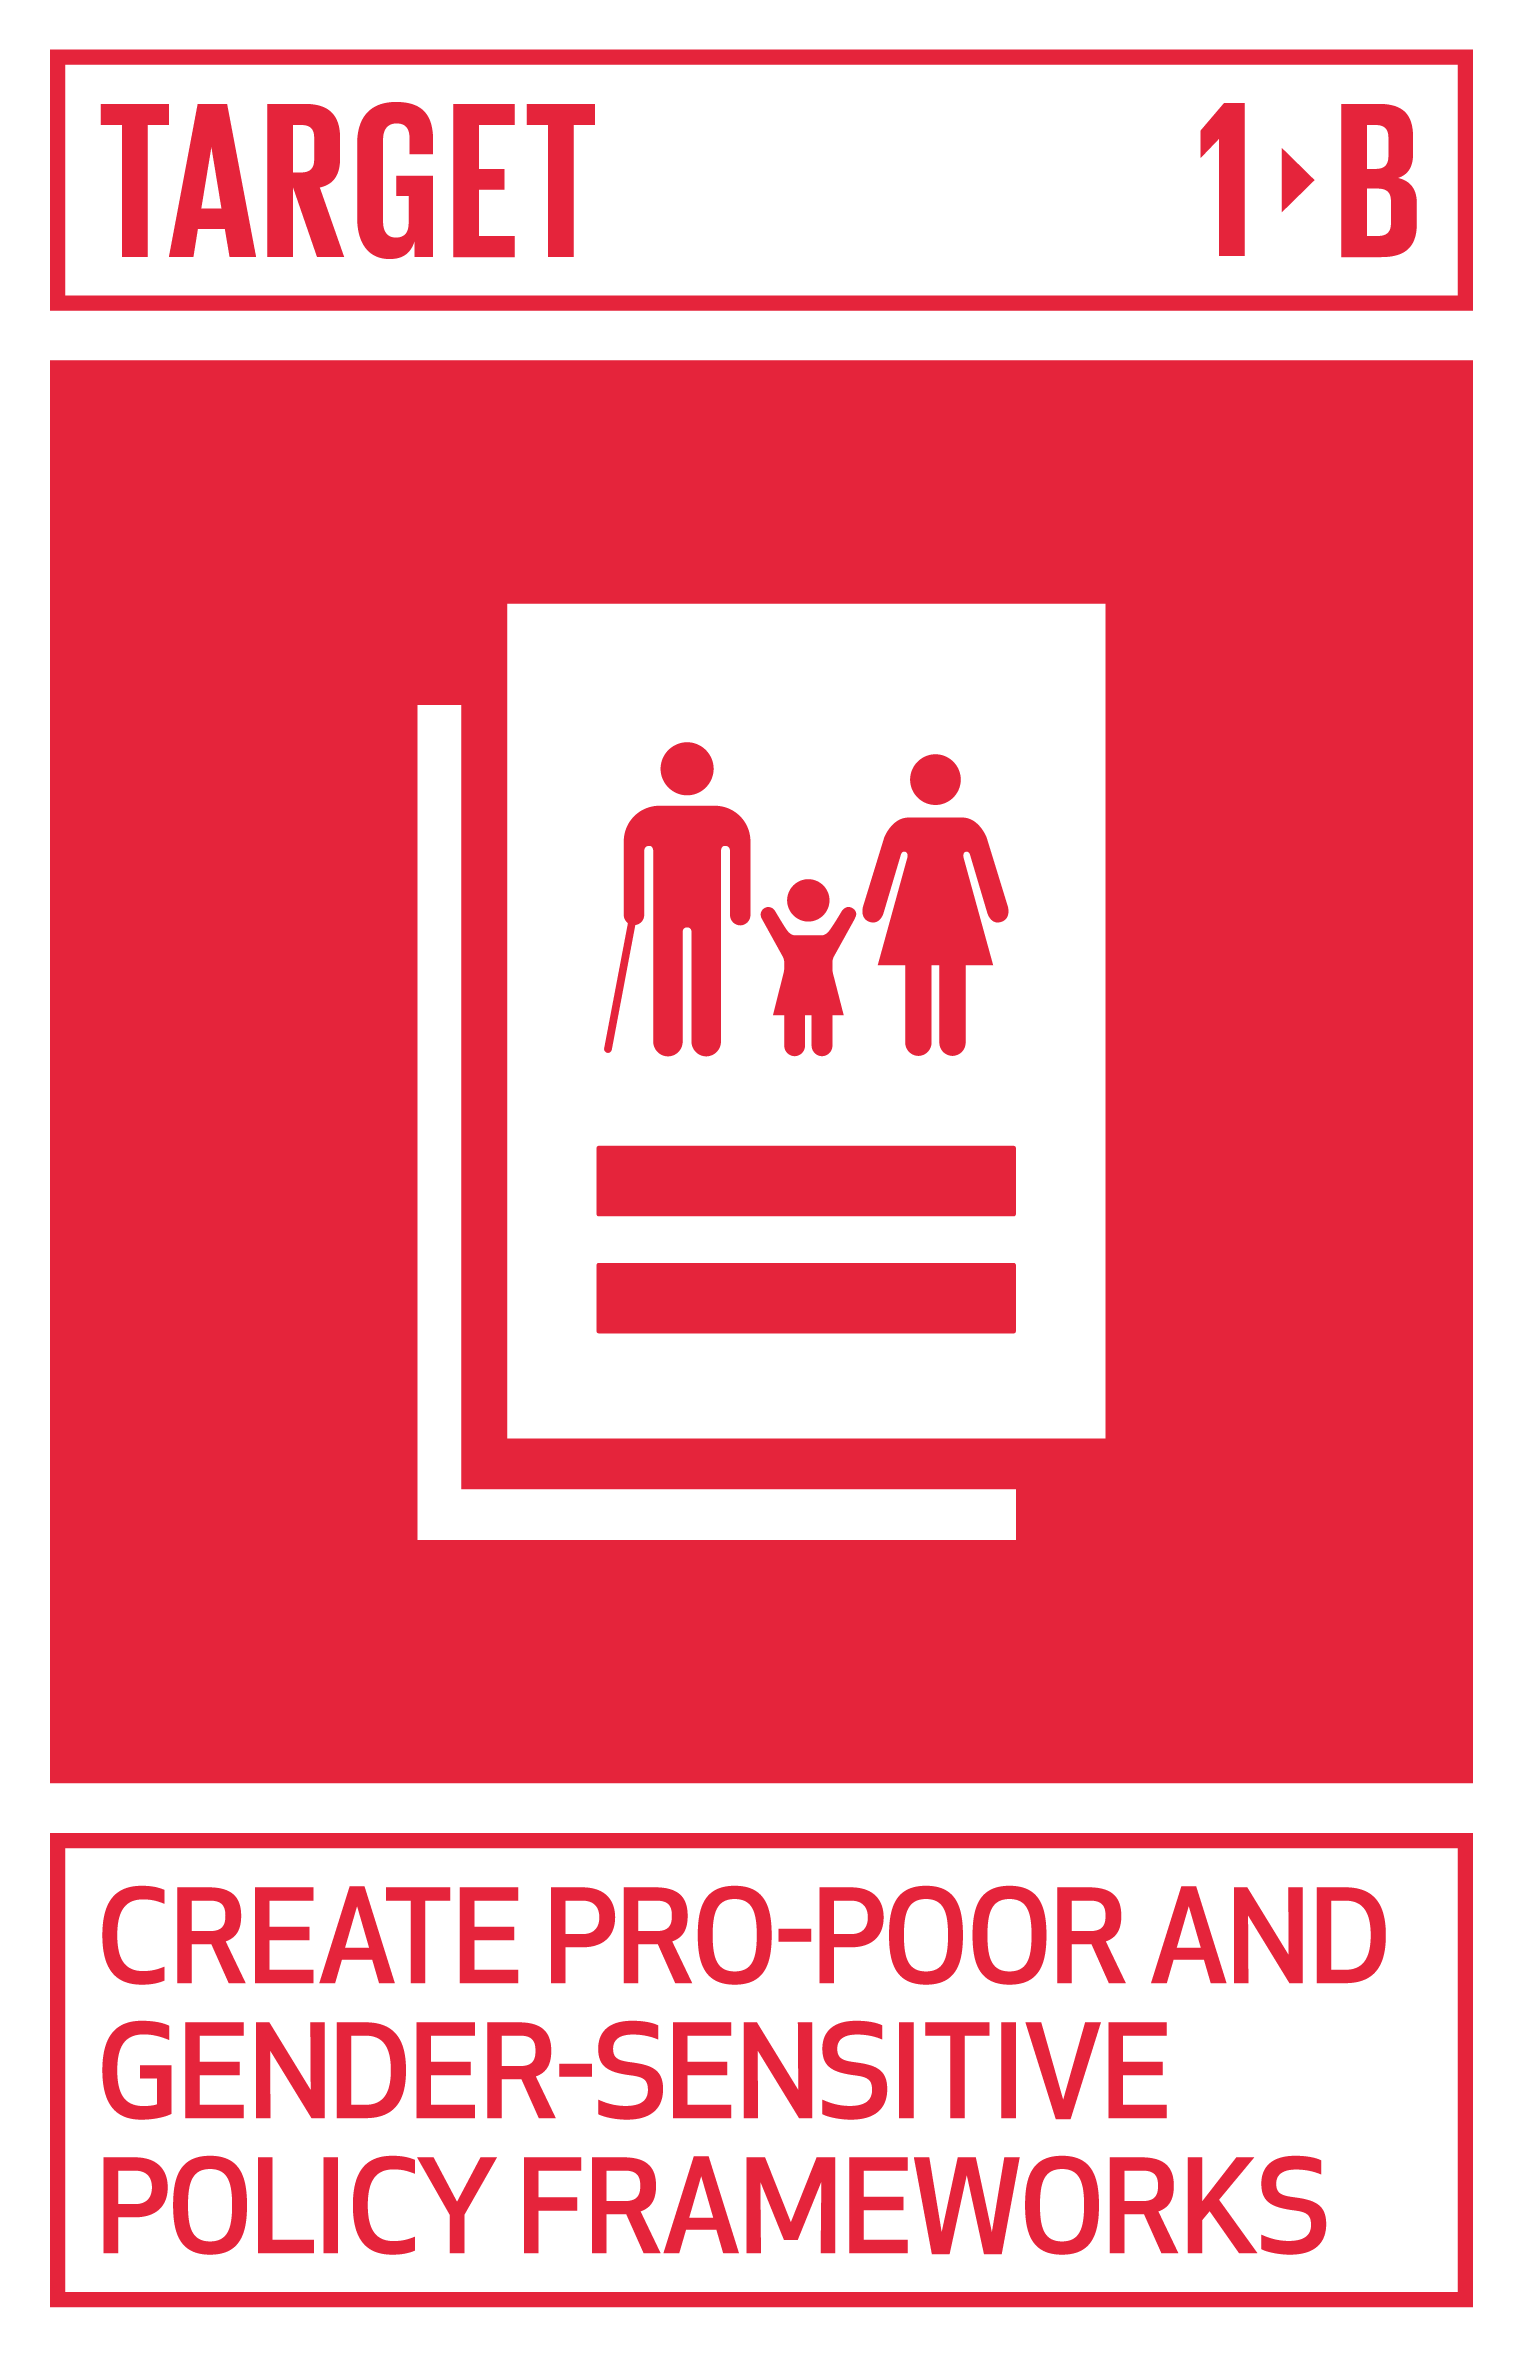 Create sound policy frameworks at the national, regional and international levels, based on pro-poor and gender-sensitive development strategies, to support accelerated investment in poverty eradication actions.   INDICATOR    1.b.1  Proportion of government recurrent and capital spending to sectors that disproportionately benefit women, the poor and vulnerable groups